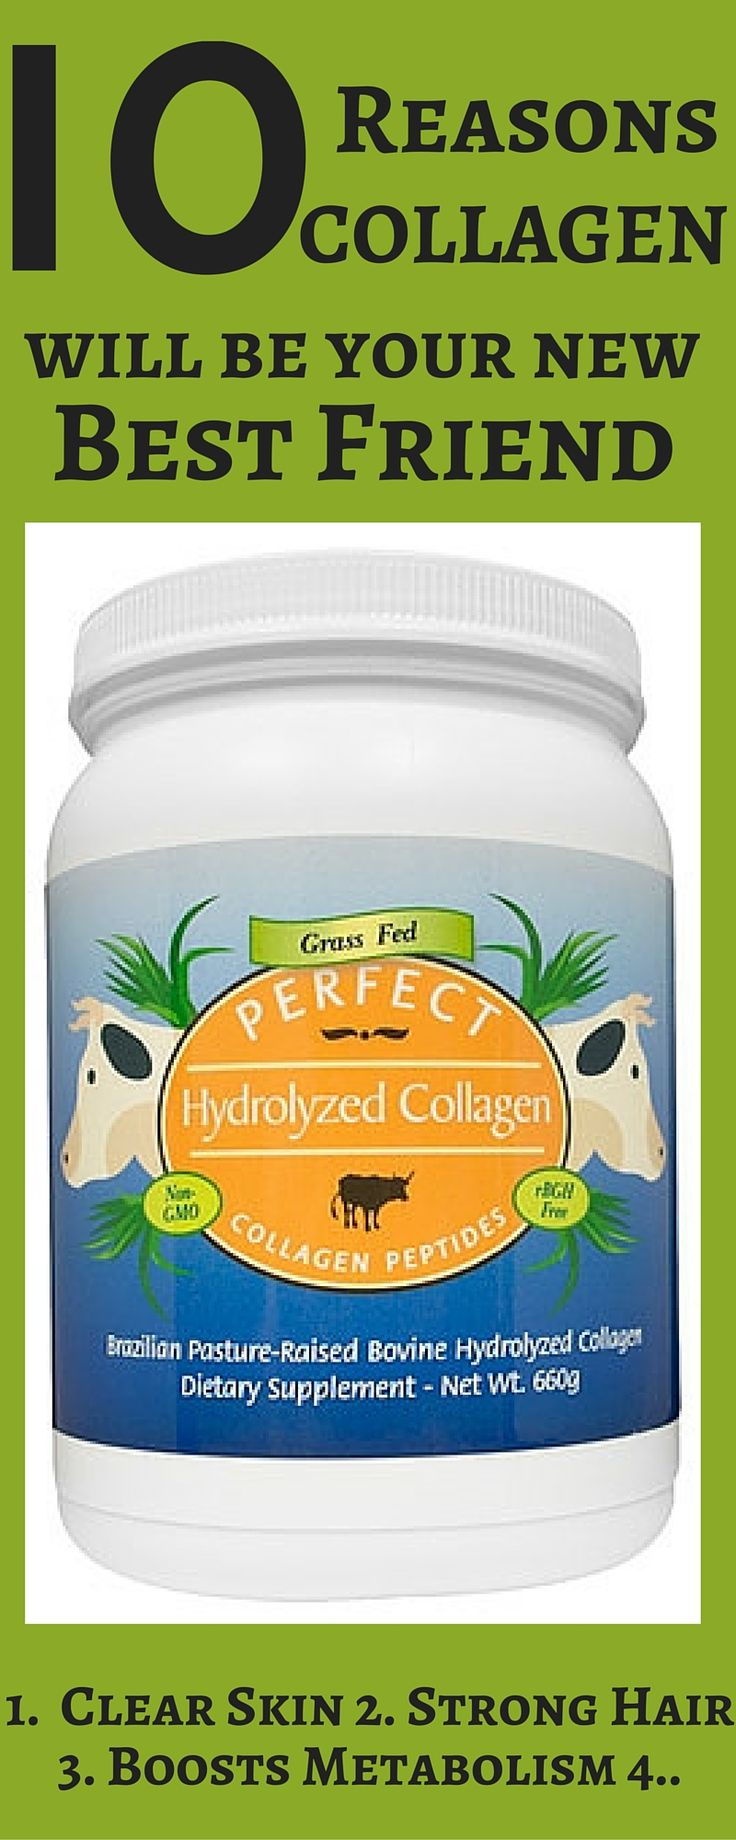 Collagen sourced from 100% Pasture Raised, Grass Fed Brazilian Bovine.   Hydrolyzed down to 5,000 DA so dissolves instantly in any liquid with great bioavailability and no nasty taste or consistency.